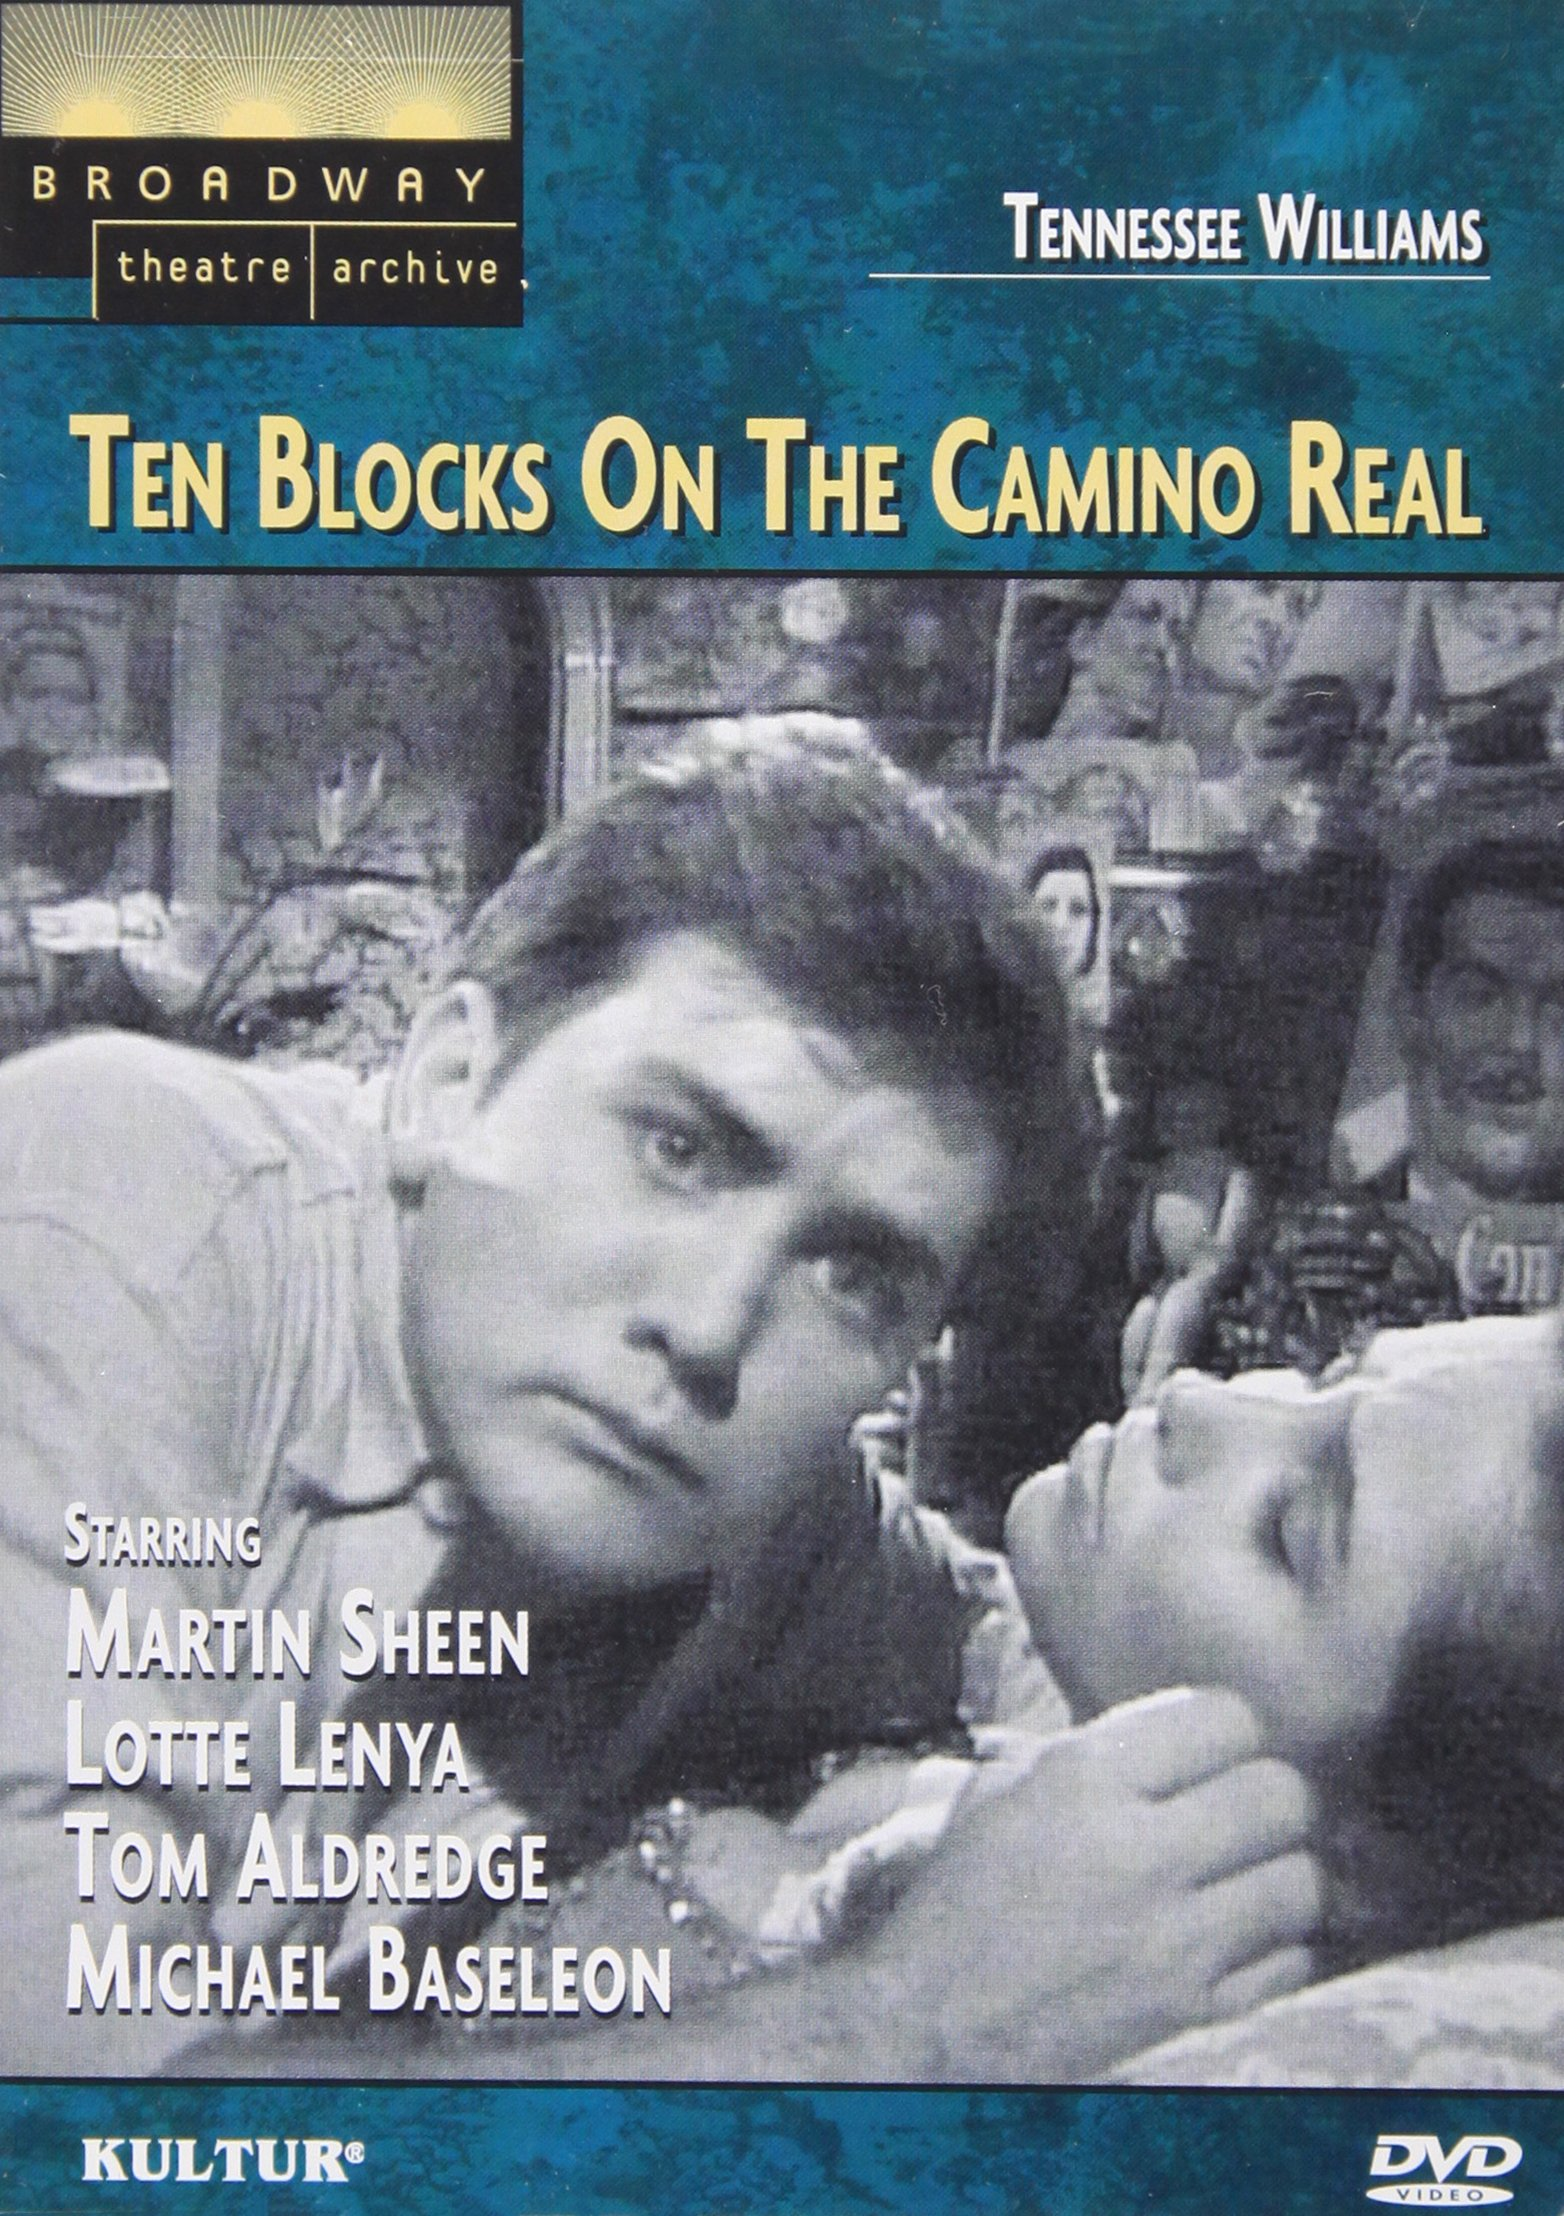 Ten Blocks on the Camino Real (Broadway Theatre Archive) by Kulter